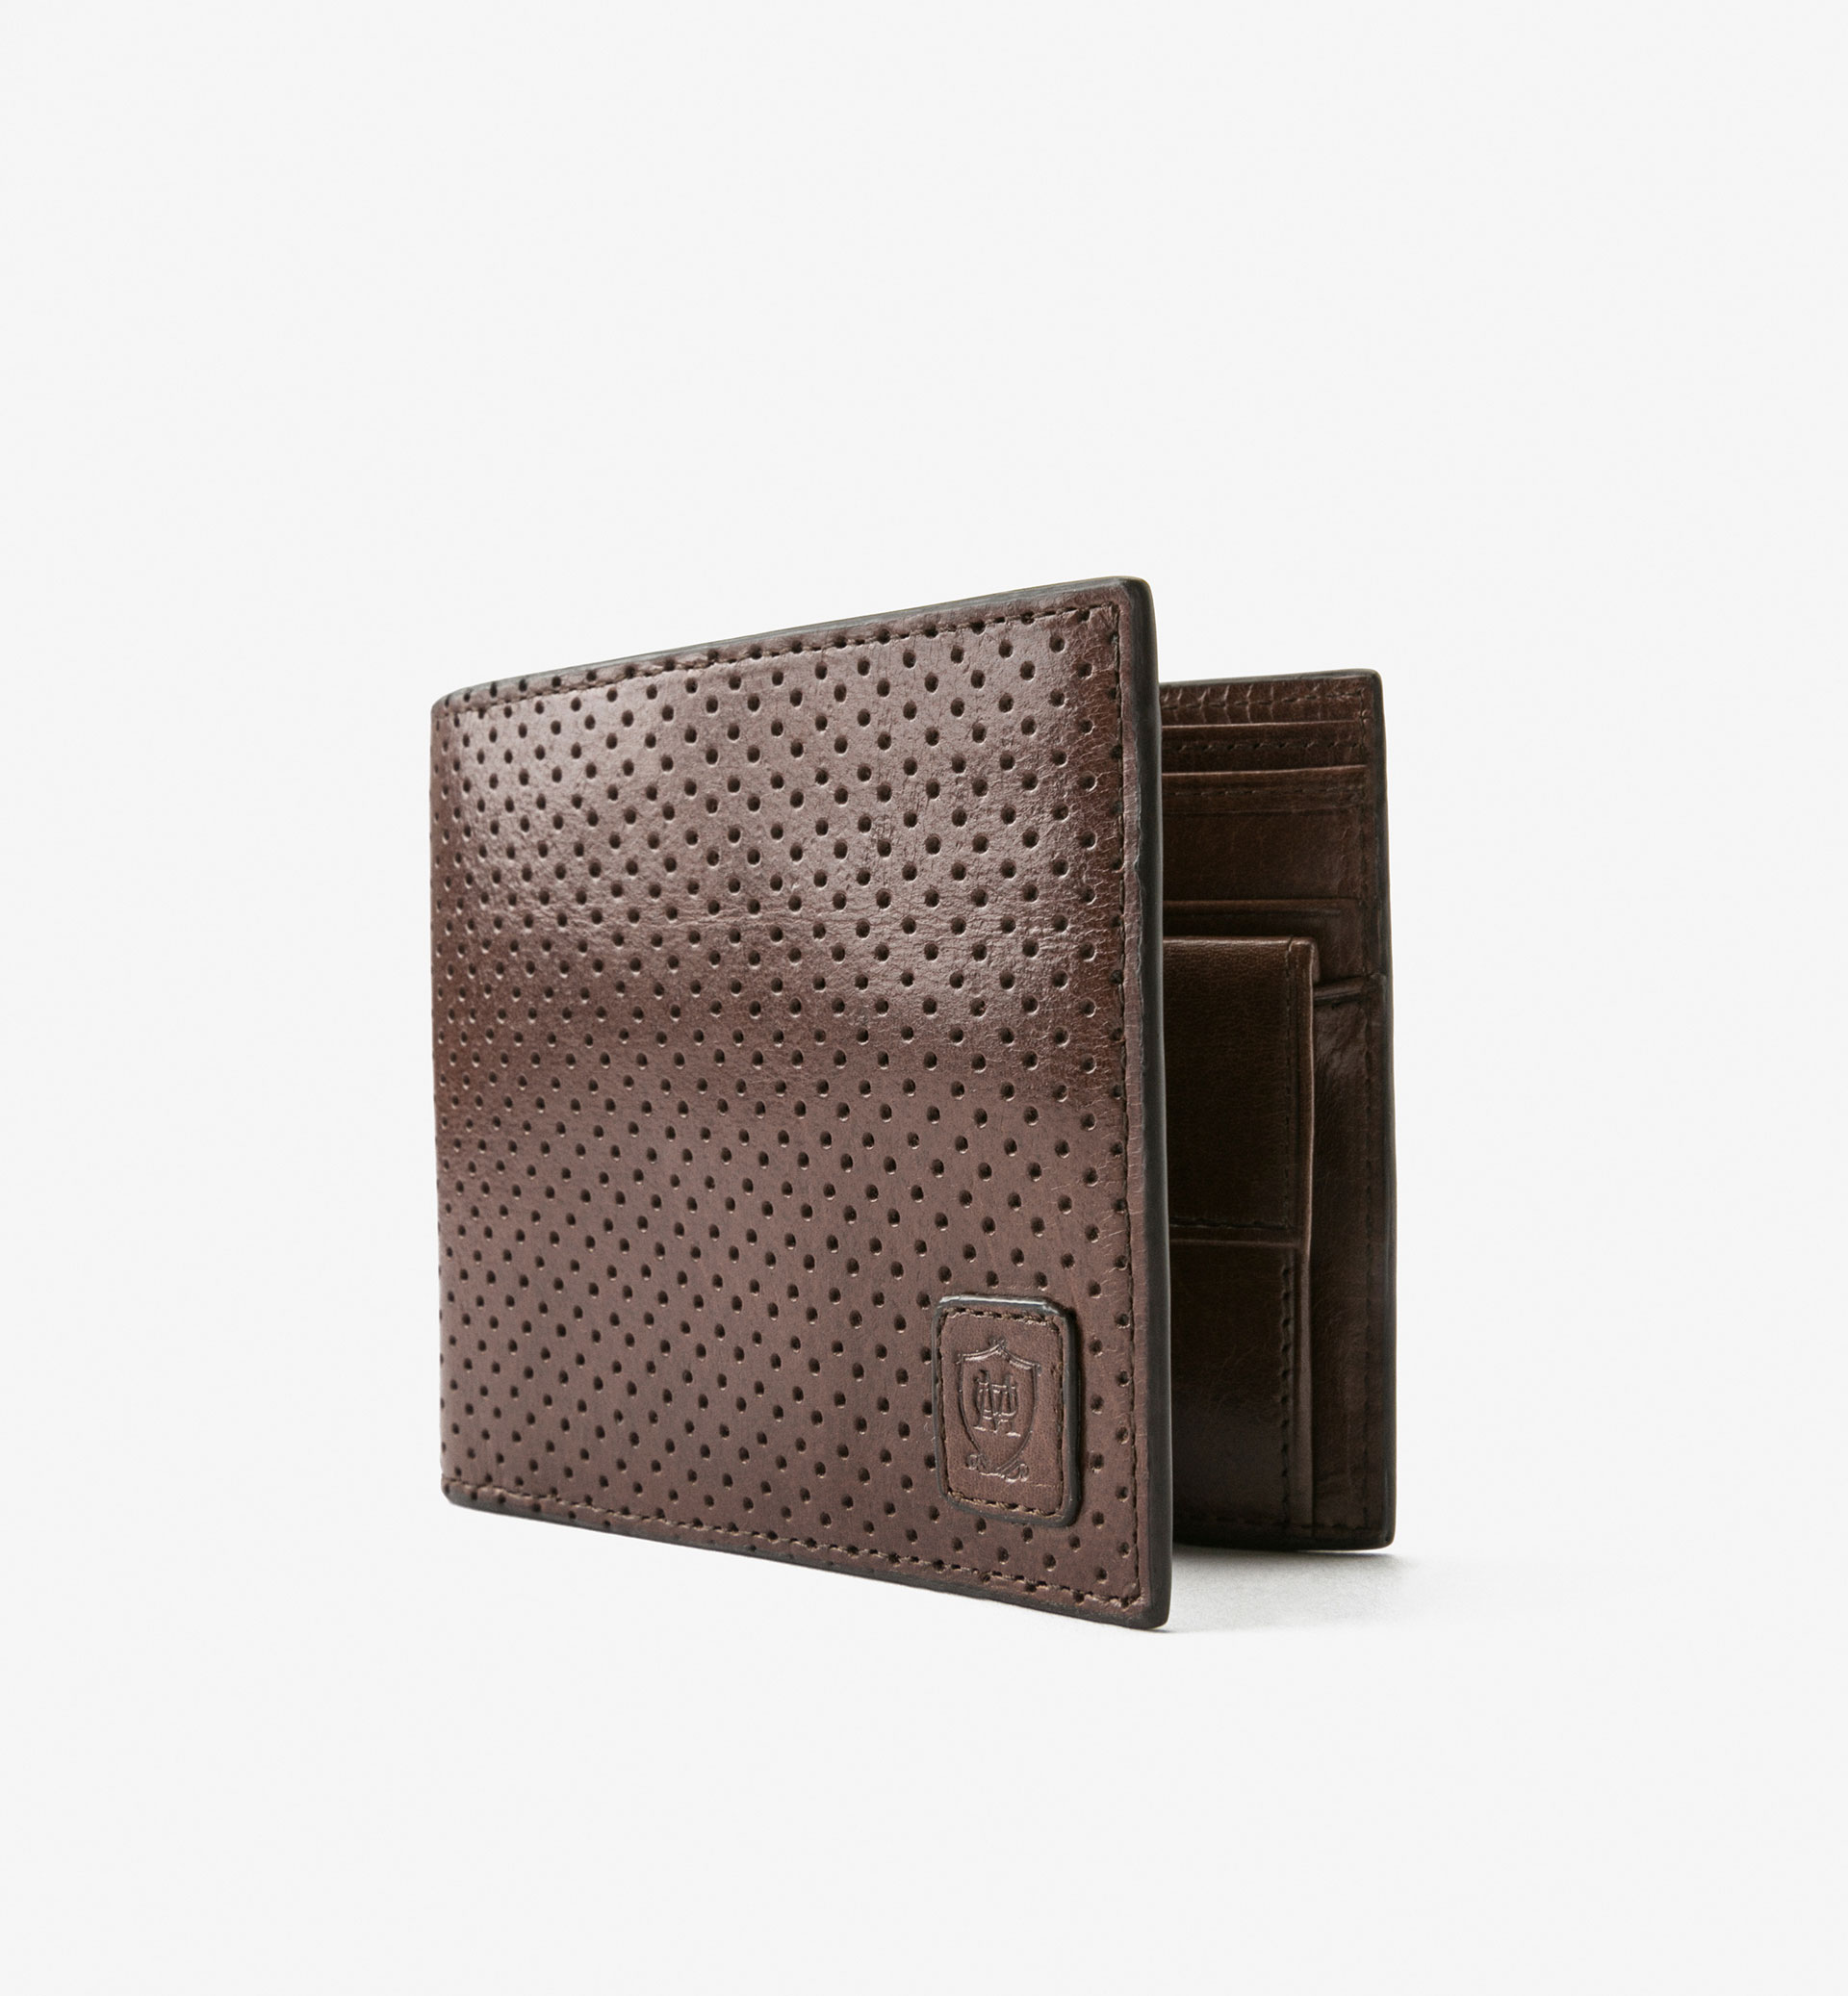 LIMITED EDITION LEATHER PERFORATED WALLET